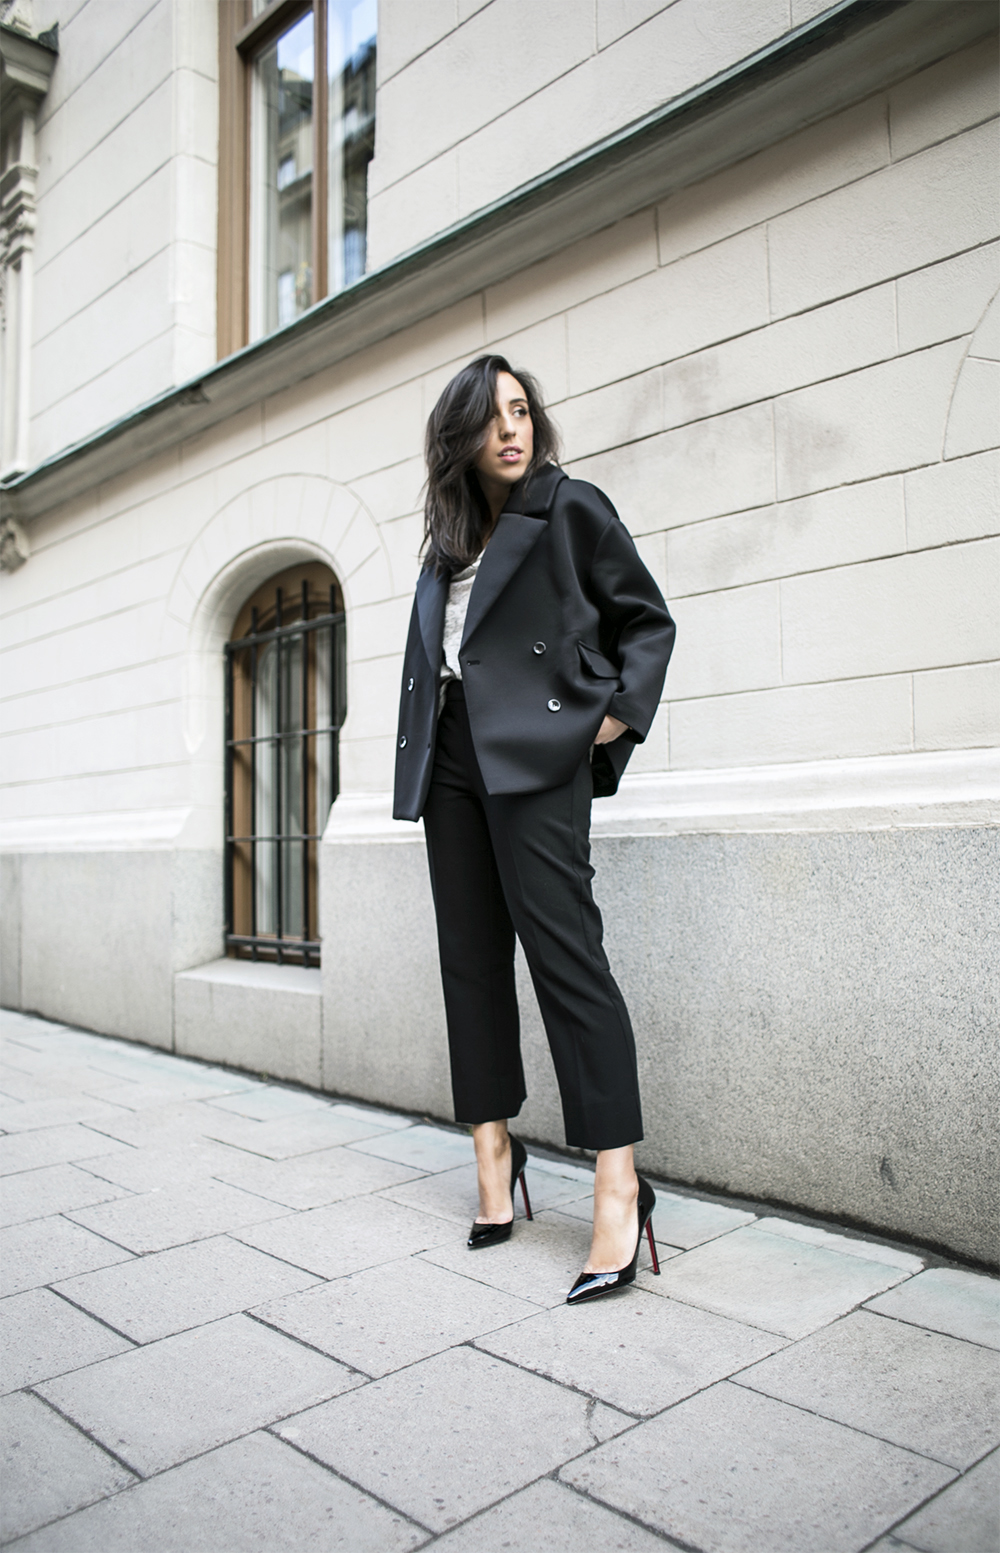 sania claus demina outfit lindex trousers christian louboubtin shoes weekday jacket by malebe birger tshirt_1